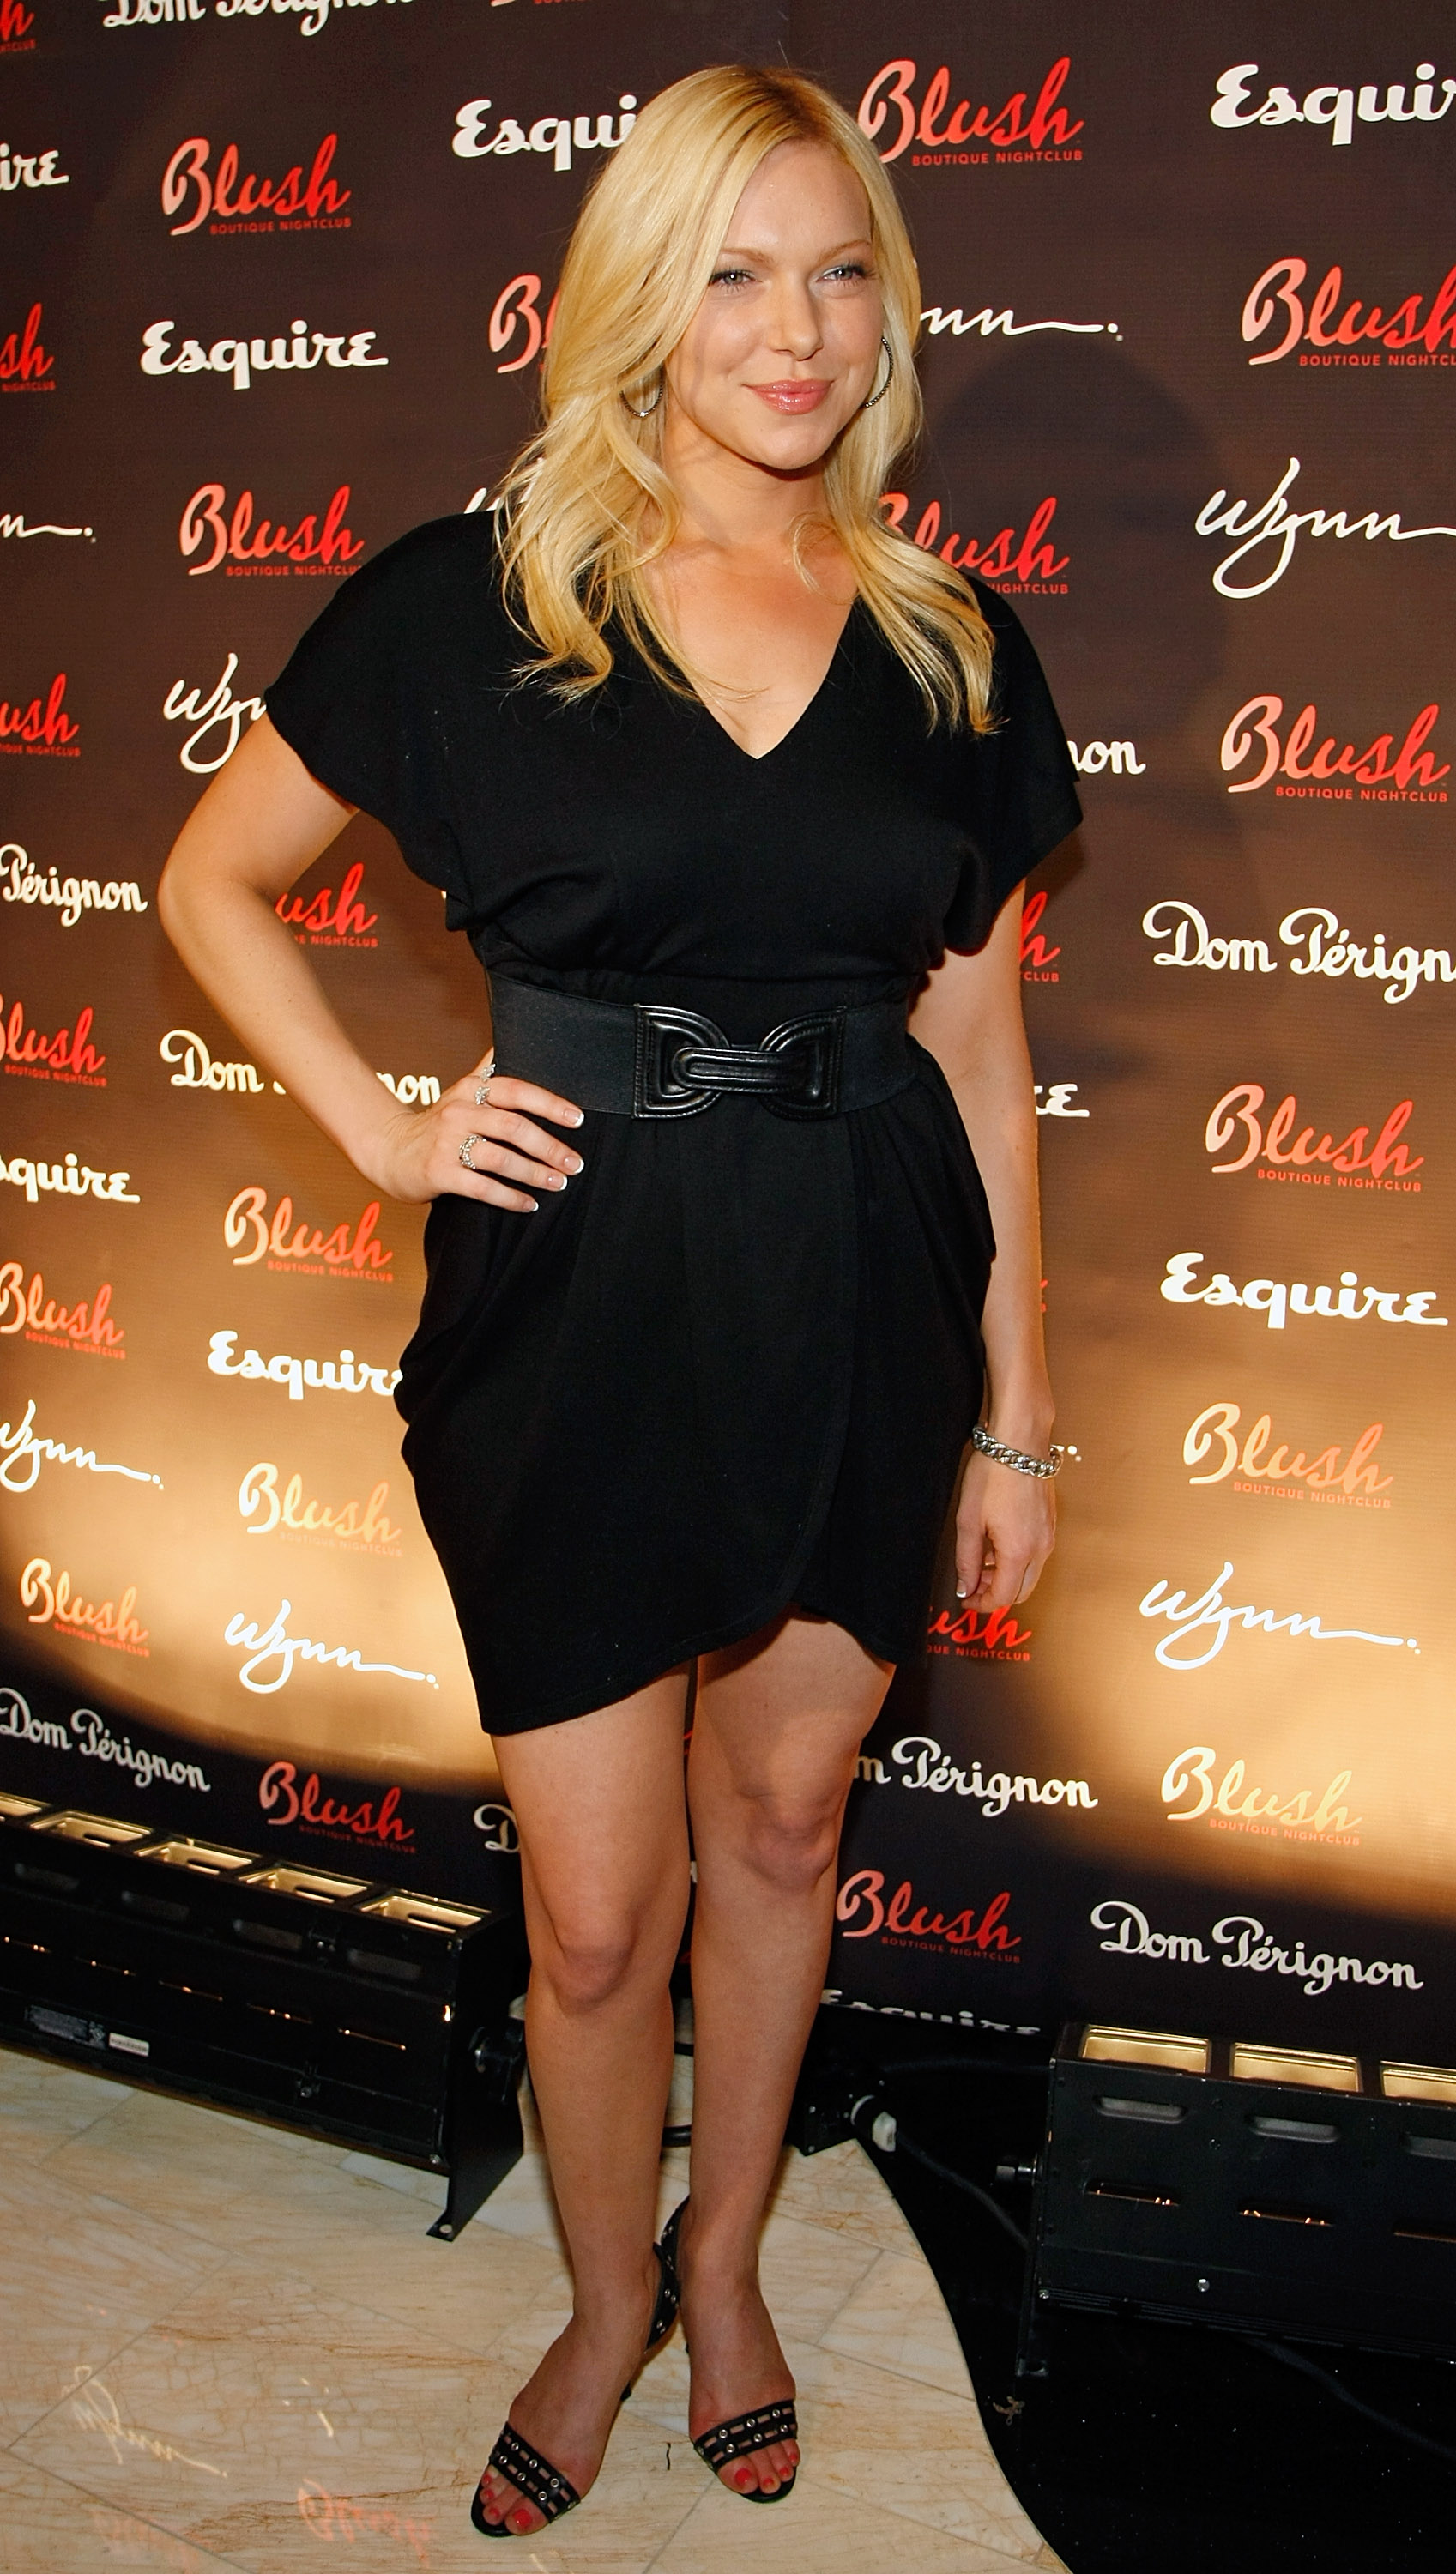 09875_Celebutopia-Laura_Prepon-Blush_Boutique_Nightclub1s_One-Year_Anniversary-03_122_780lo.jpg